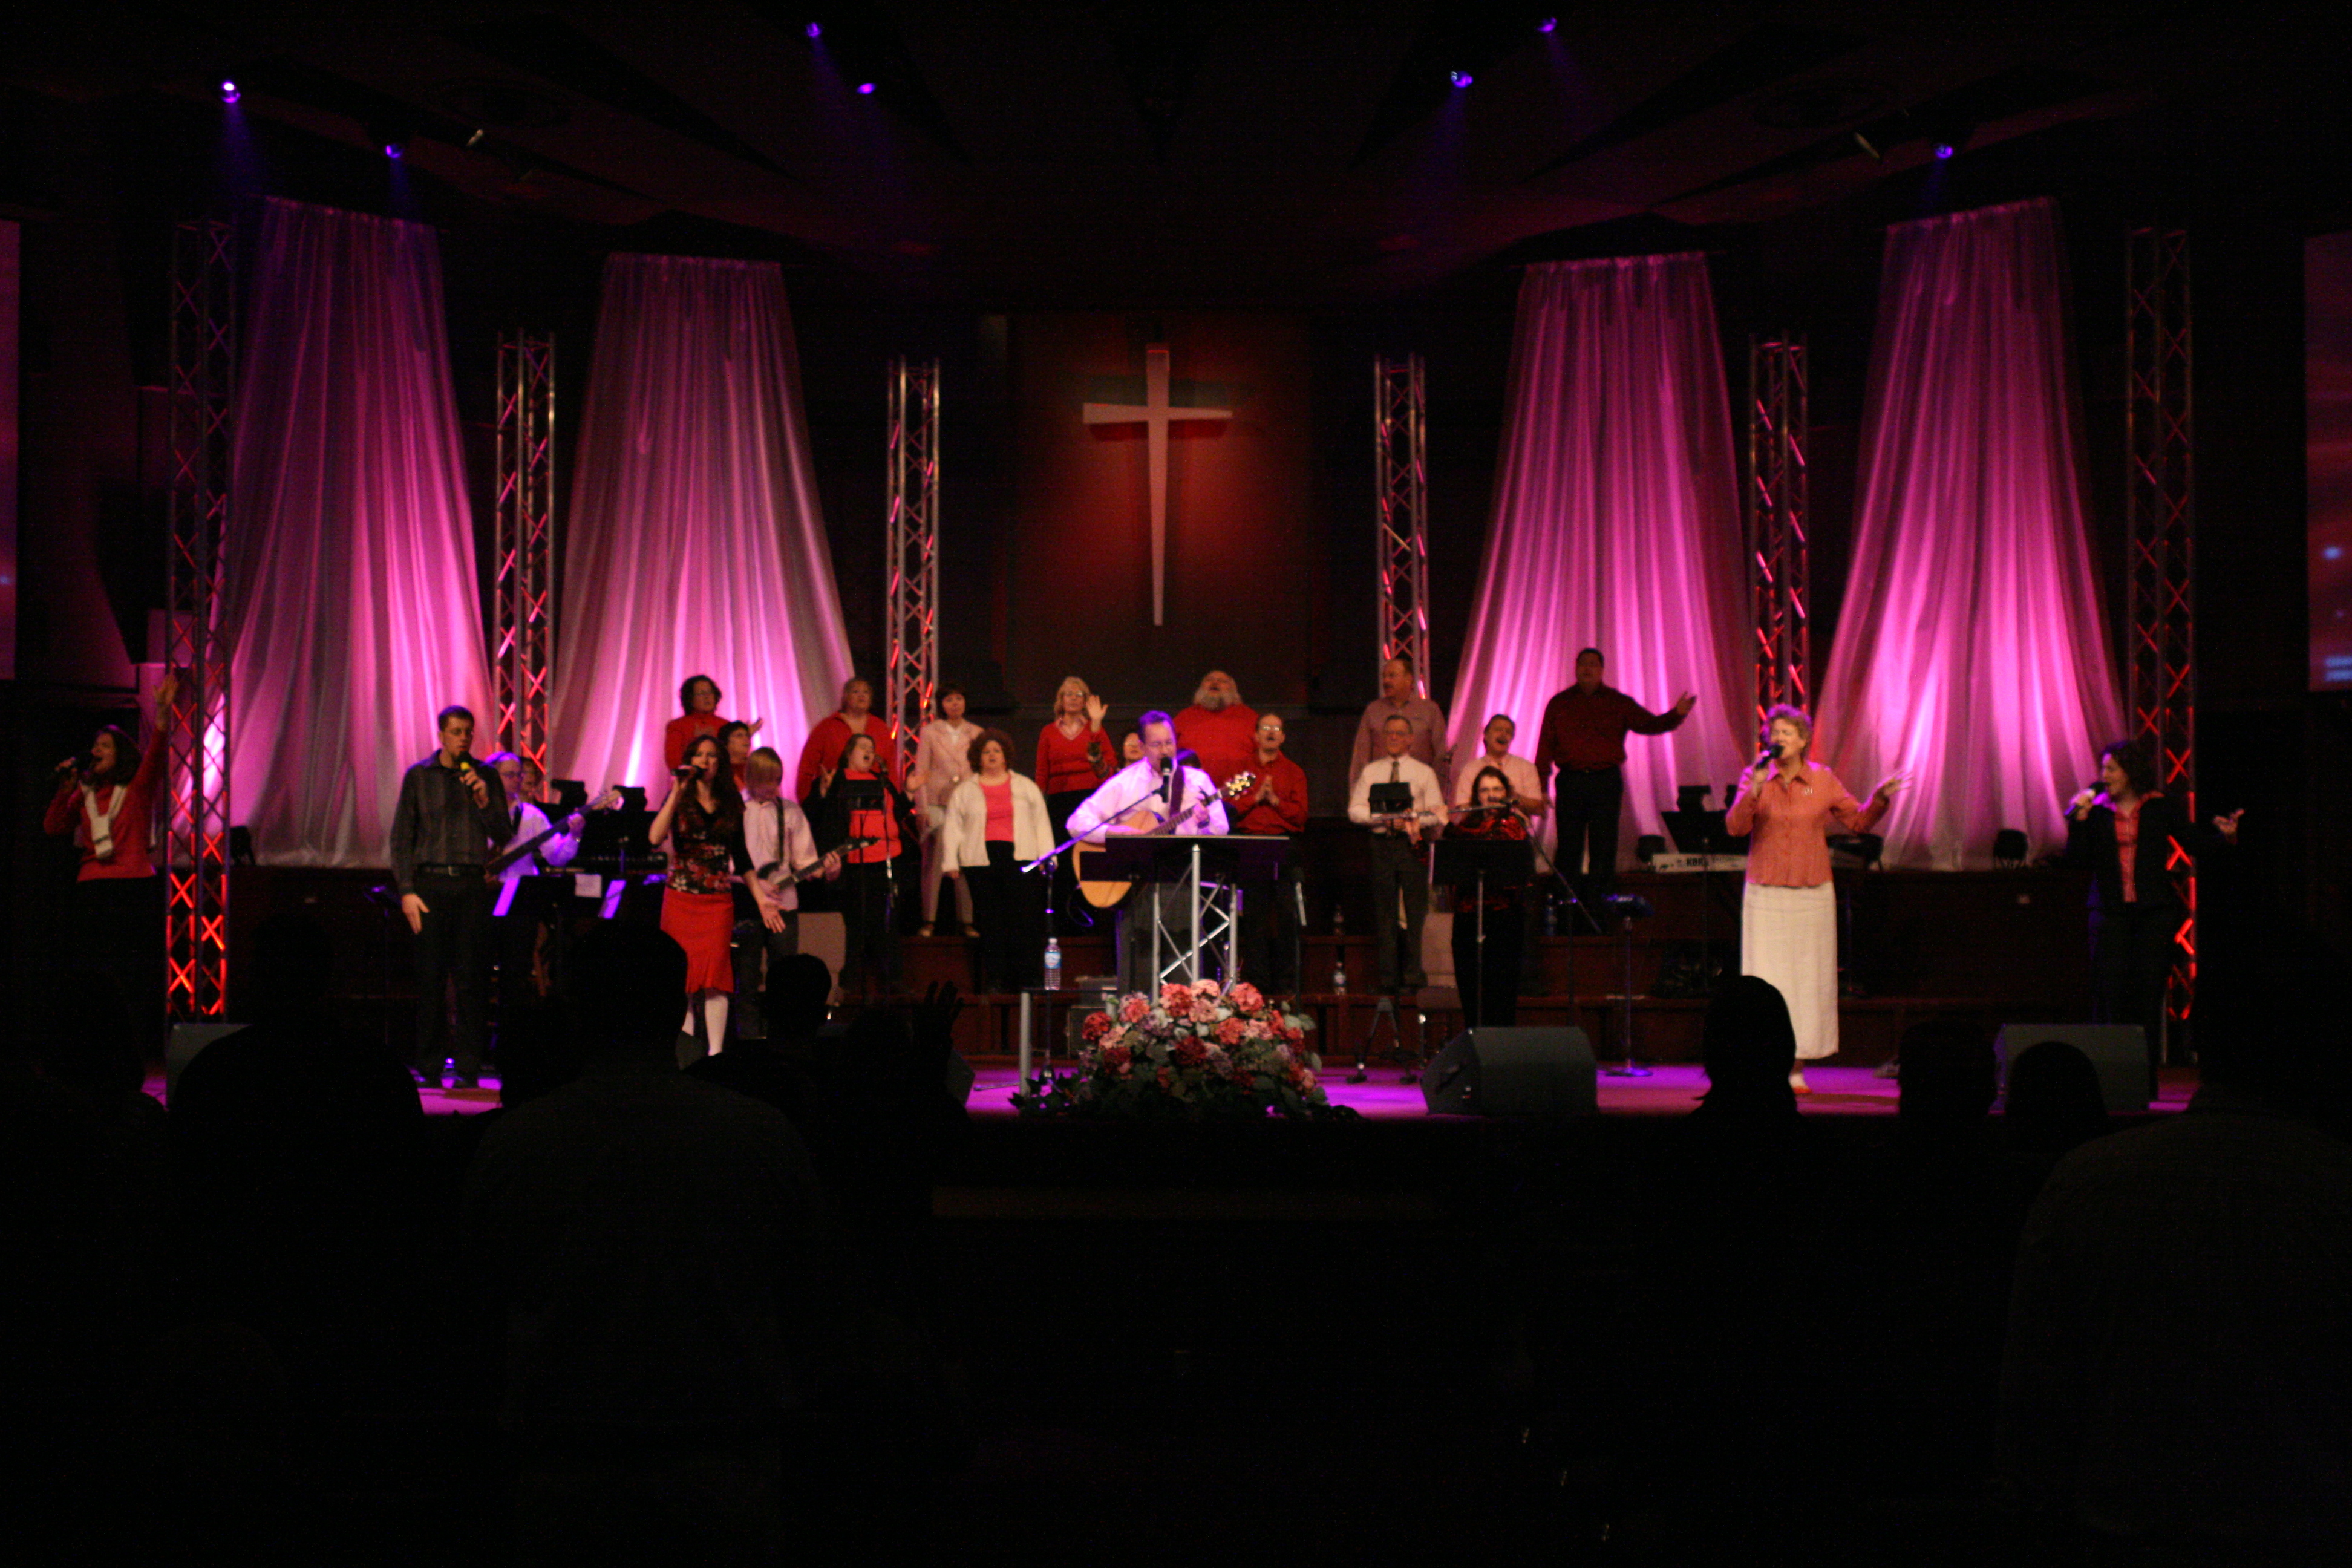 Awesome Images Of Church Stage Decoration Ideas